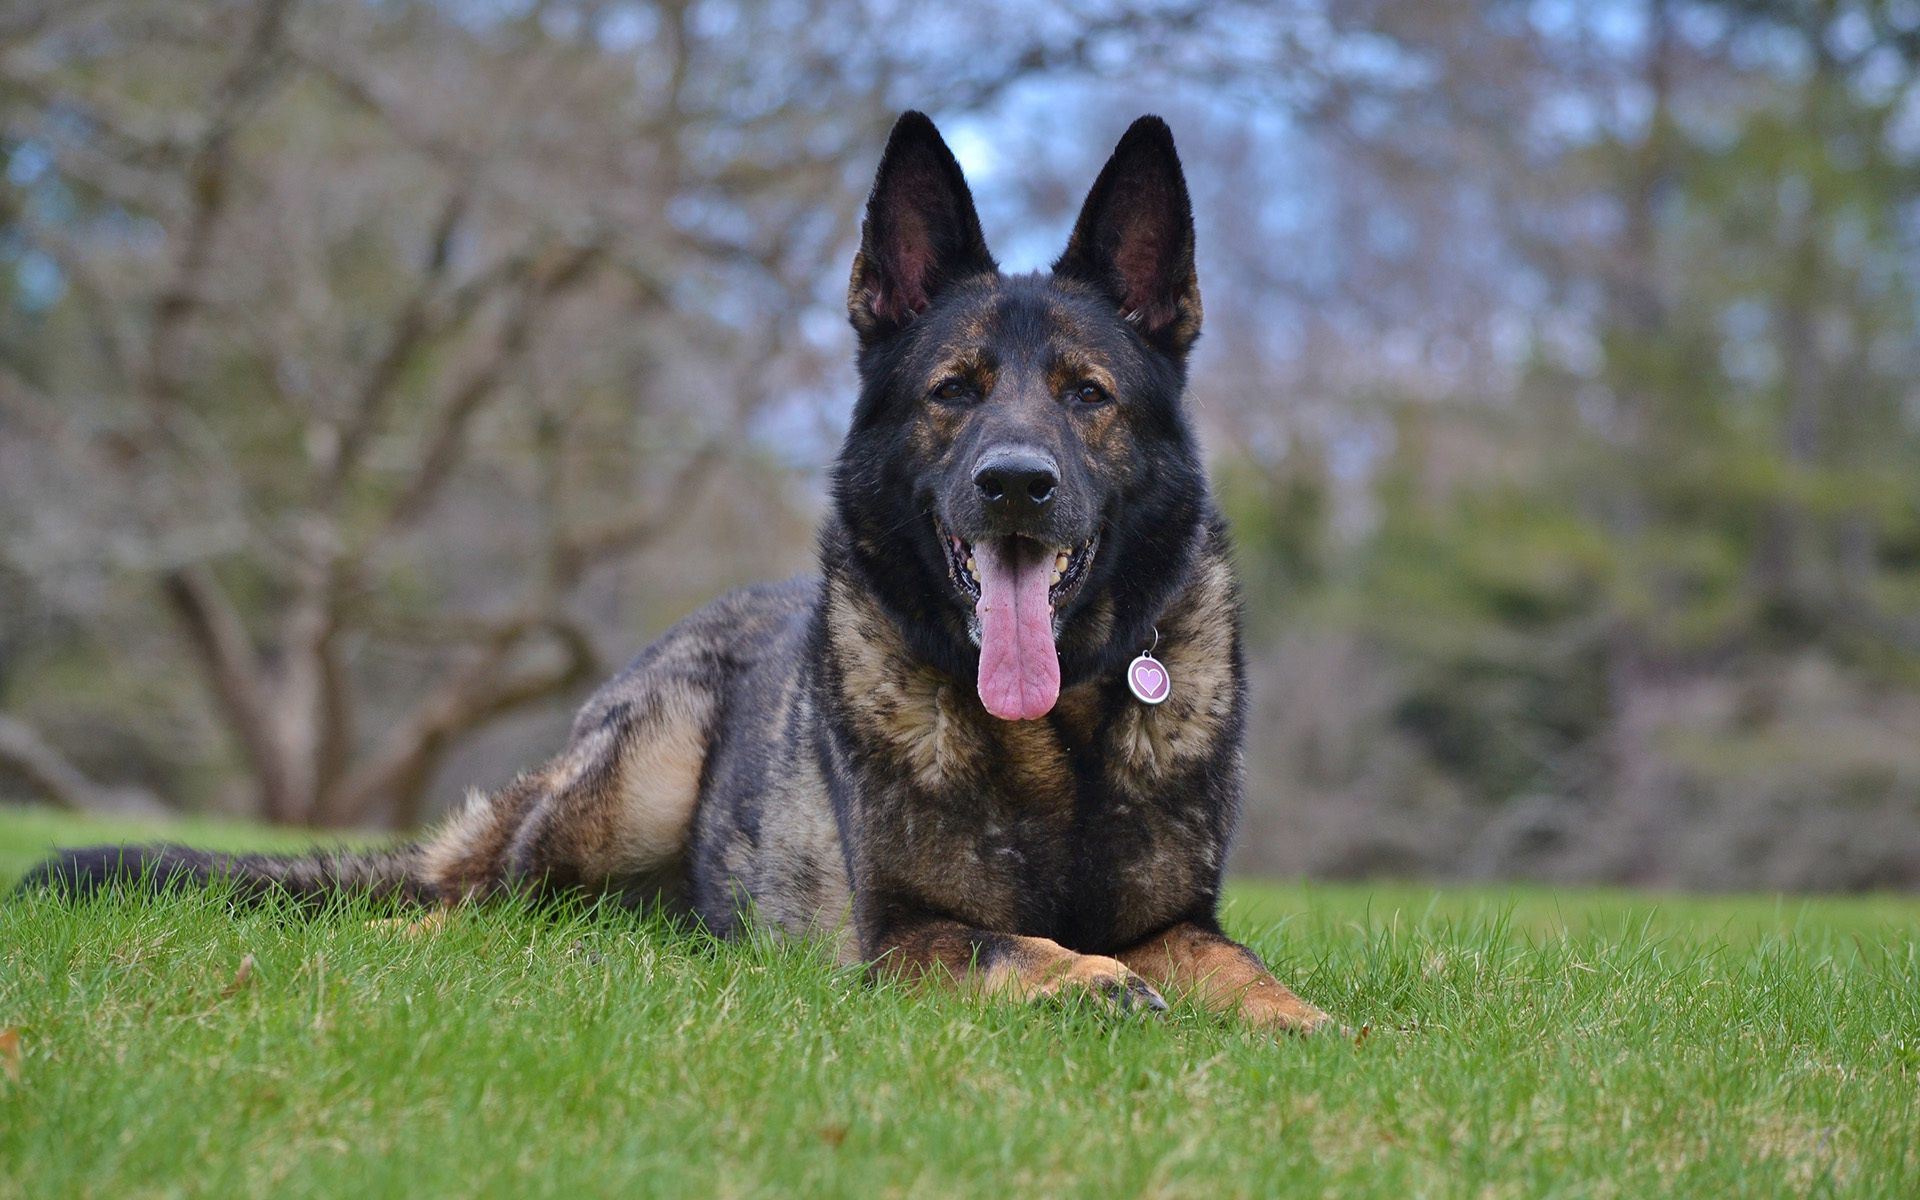 146008 download wallpaper Dog, Animals, Muzzle, Protruding Tongue, Tongue Stuck Out, German Shepherd screensavers and pictures for free